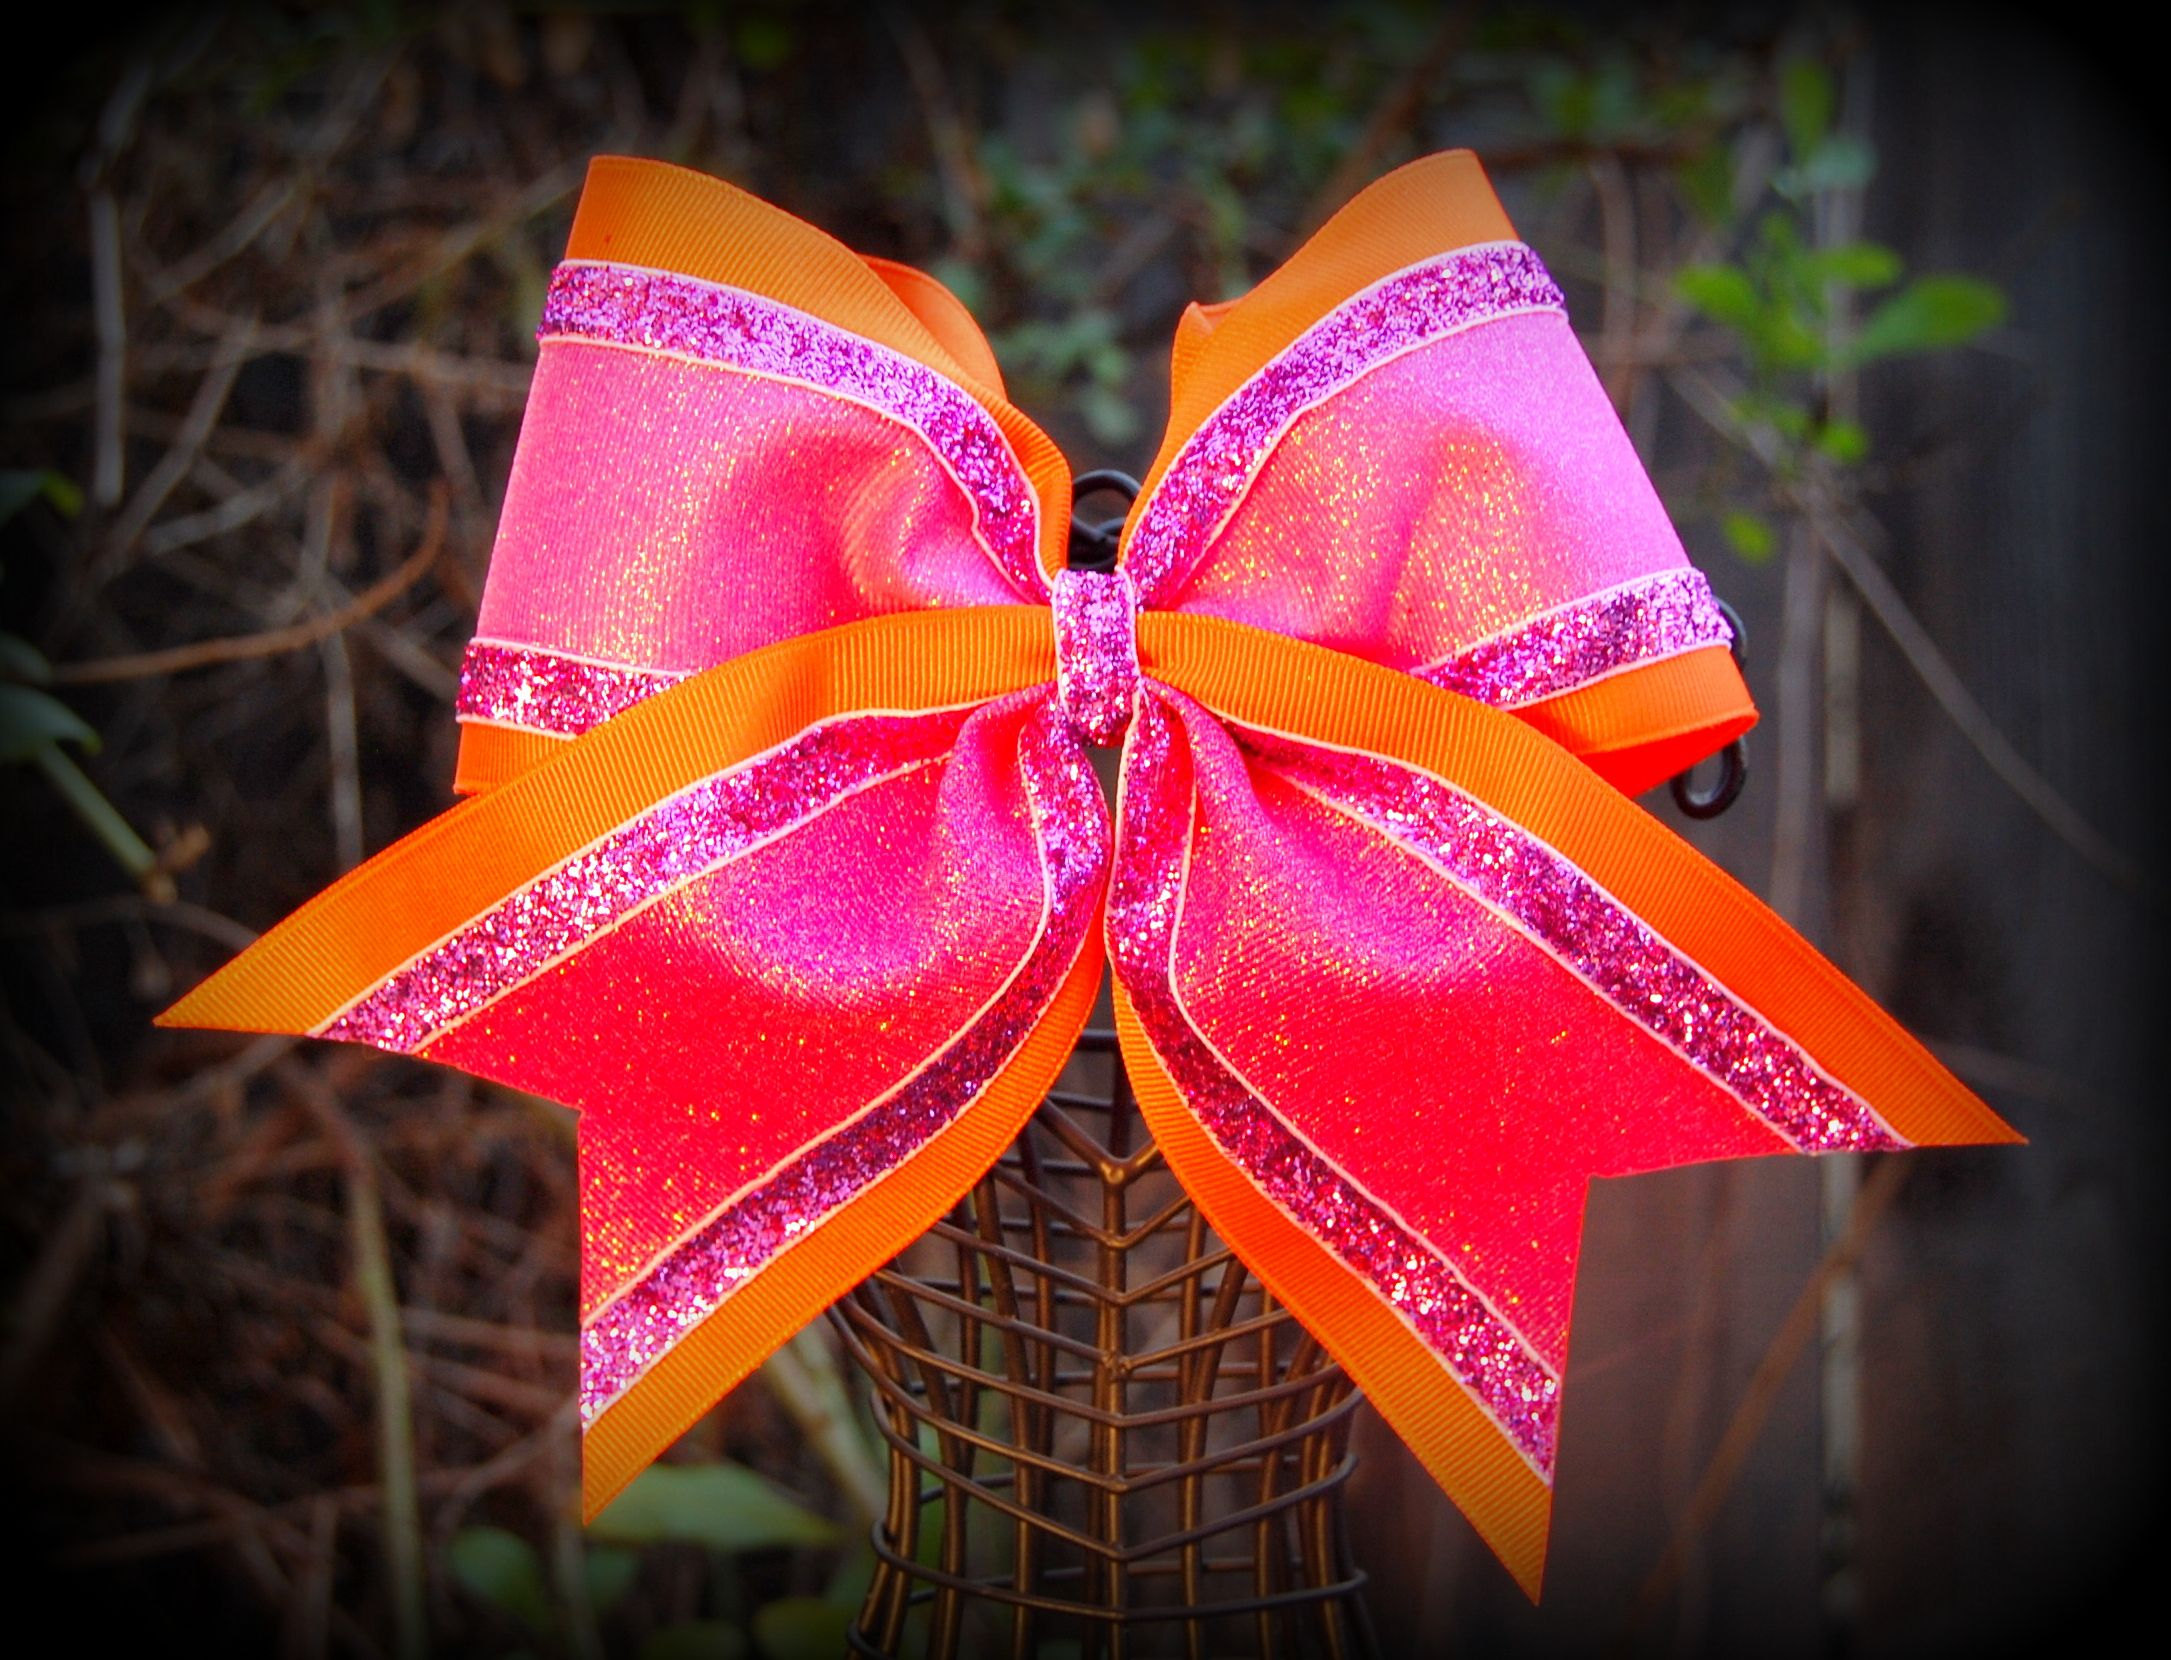 Hand crafted cheer bow in neon orange base hot pink glitter grosgrain center flanked by pink glitter velvet. See more on Facebook at  Ribbons and Bows Oh My  or our website at www.ribbonsandbowsohmy.net.   For custom design work email us at  ribbonsandbowsohmy.net@gmail.com